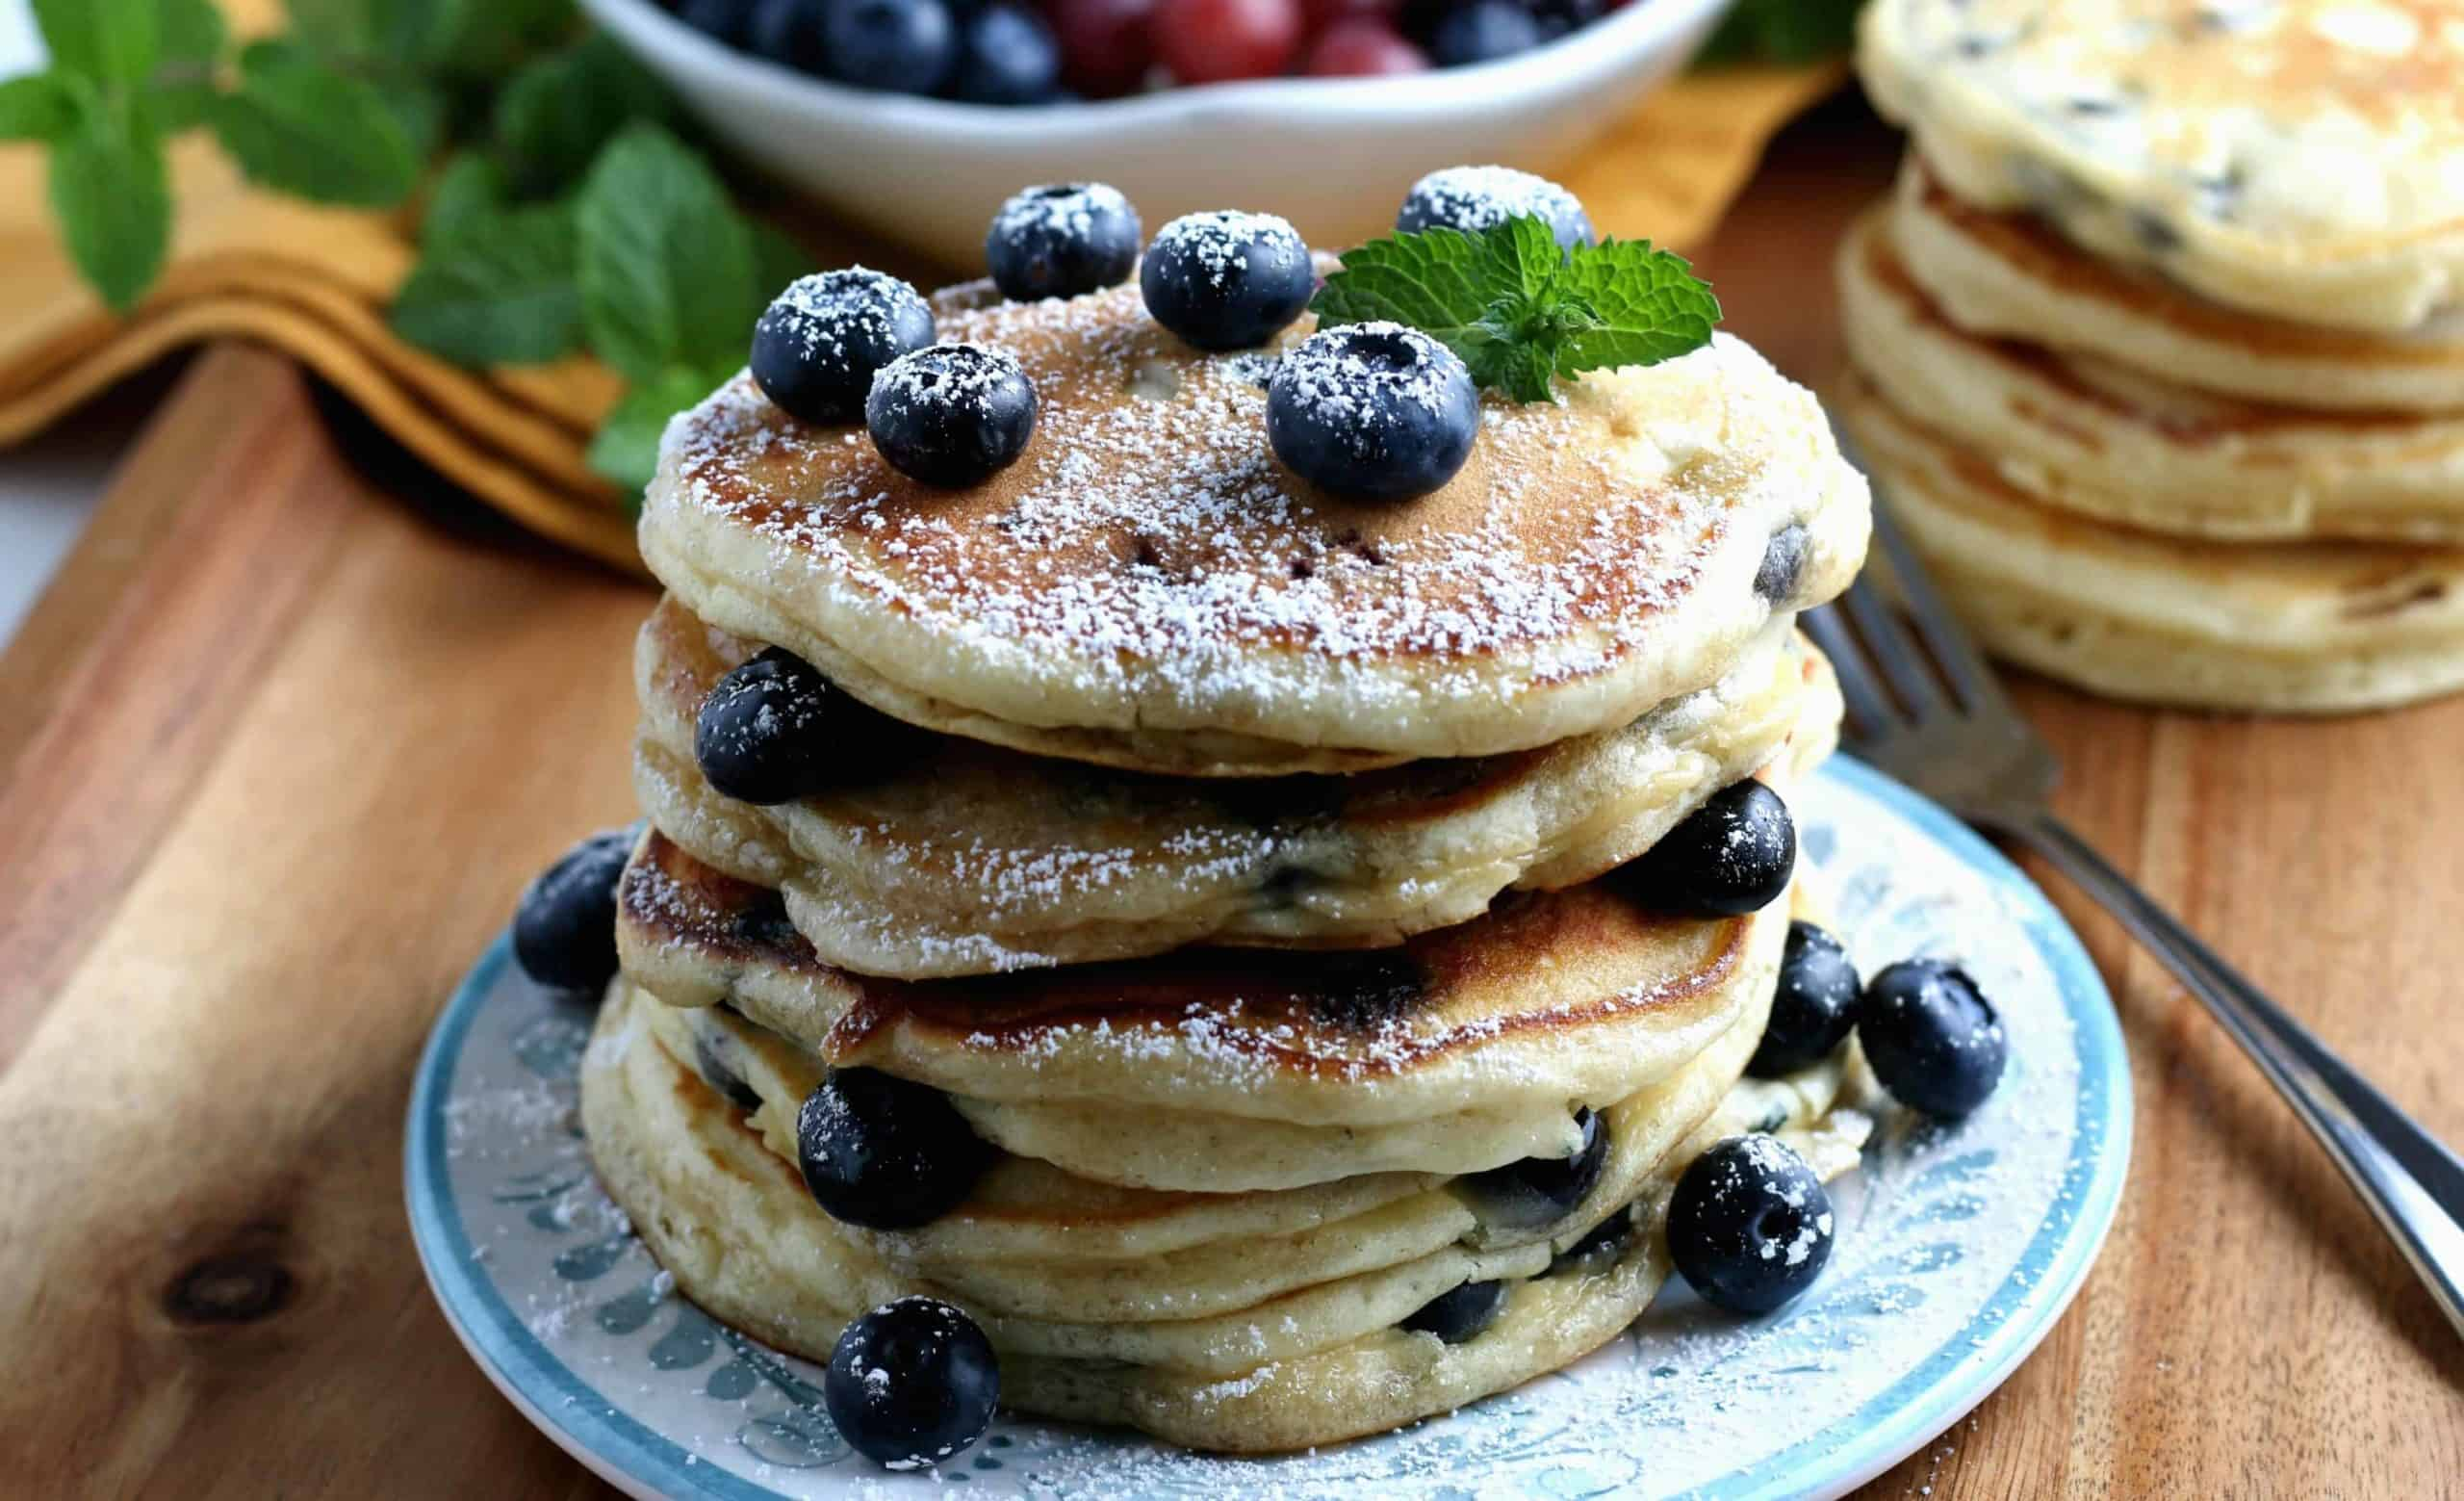 Wide photo of a stack of sugar frosted breakfast on a blue plate.